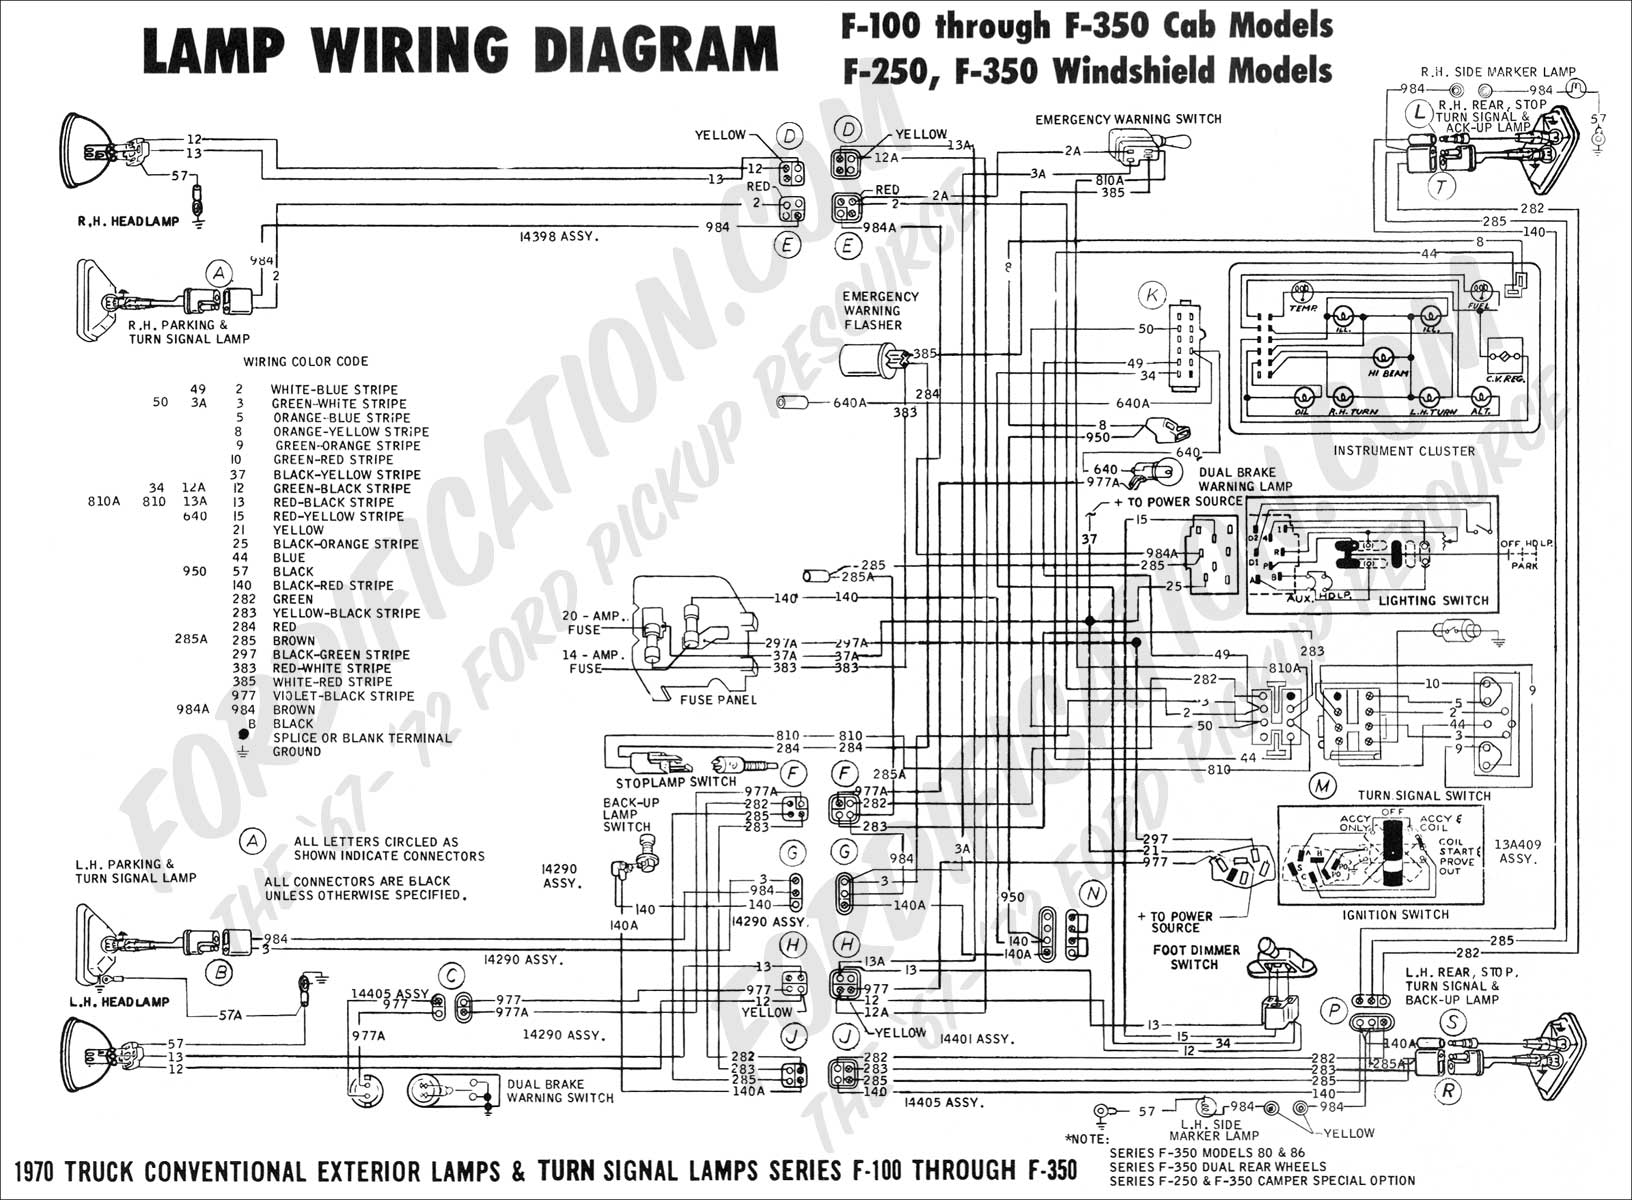 wiring diagram for ford f wiring diagram for ford 2016 ford f250 wiring diagram 2016 ford f250 wiring diagram due